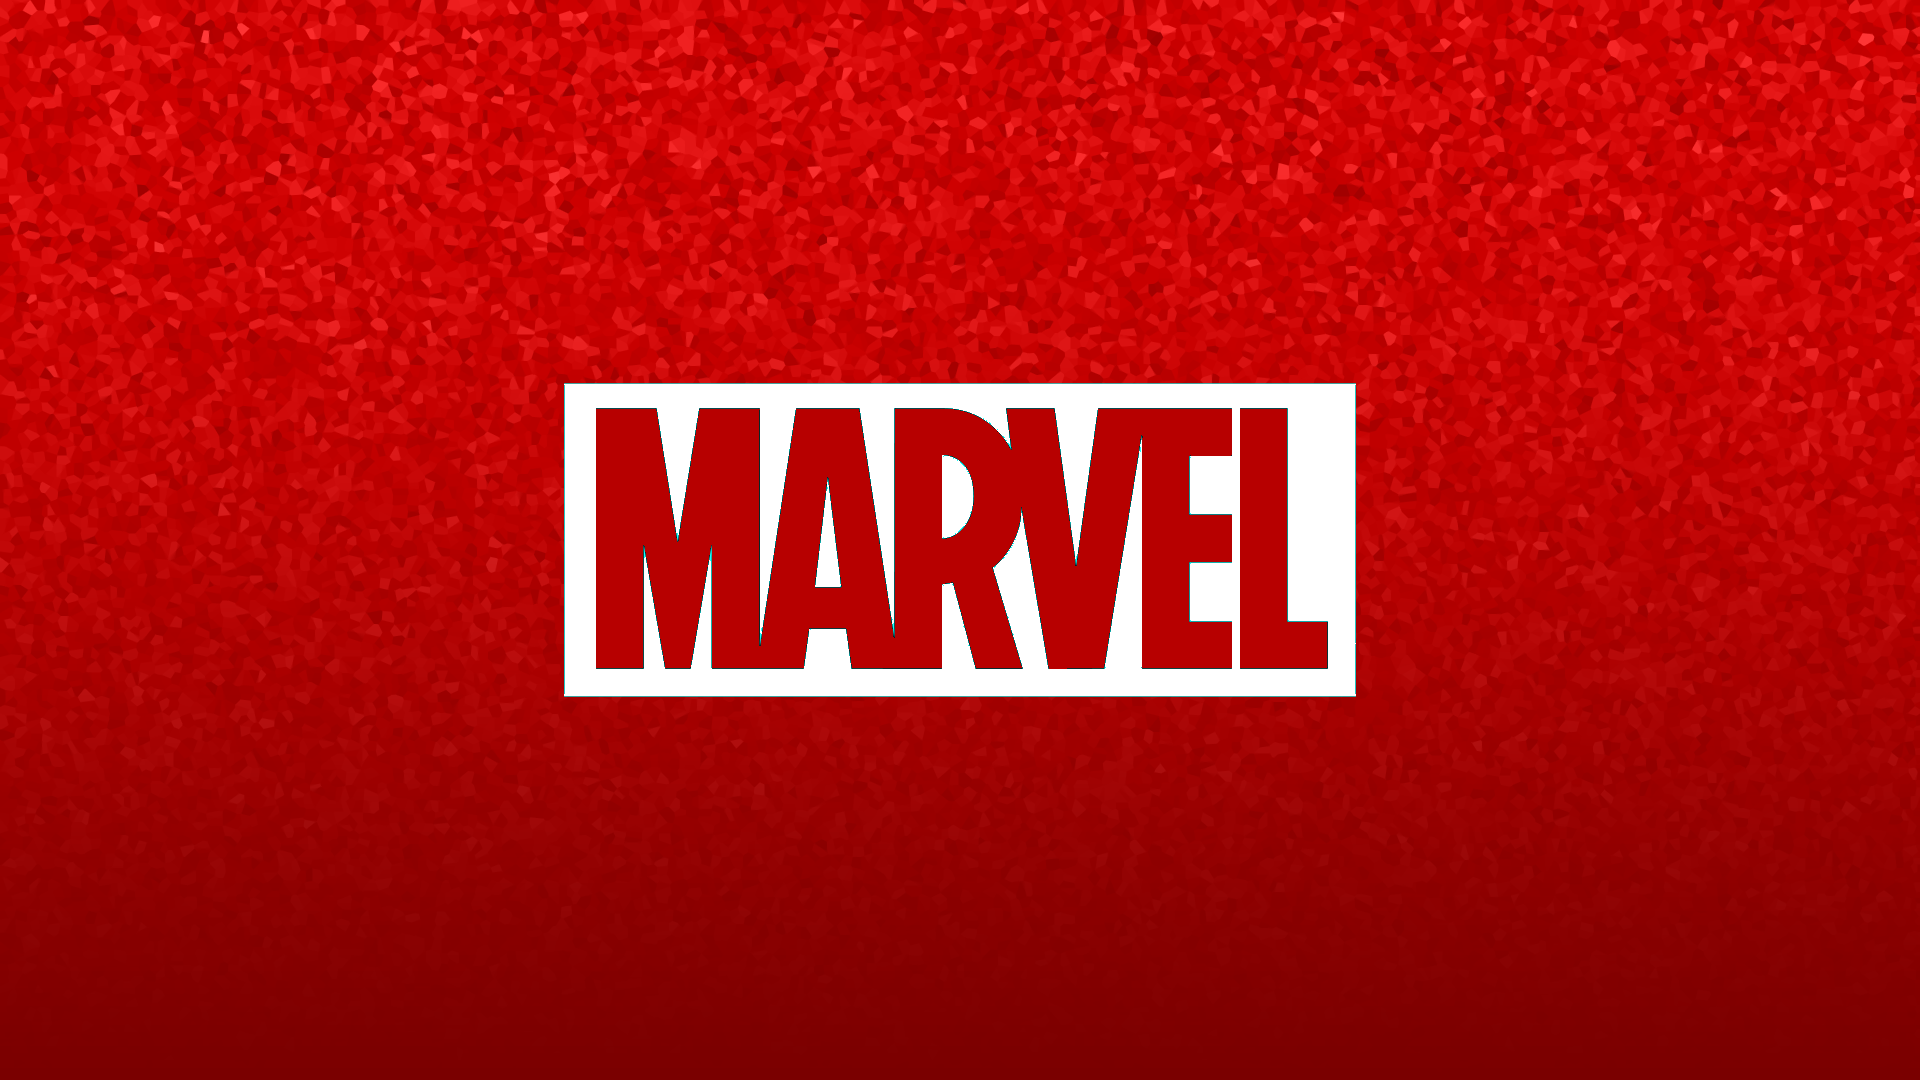 Wallpaper   Marvel Invert by desous 1920x1080